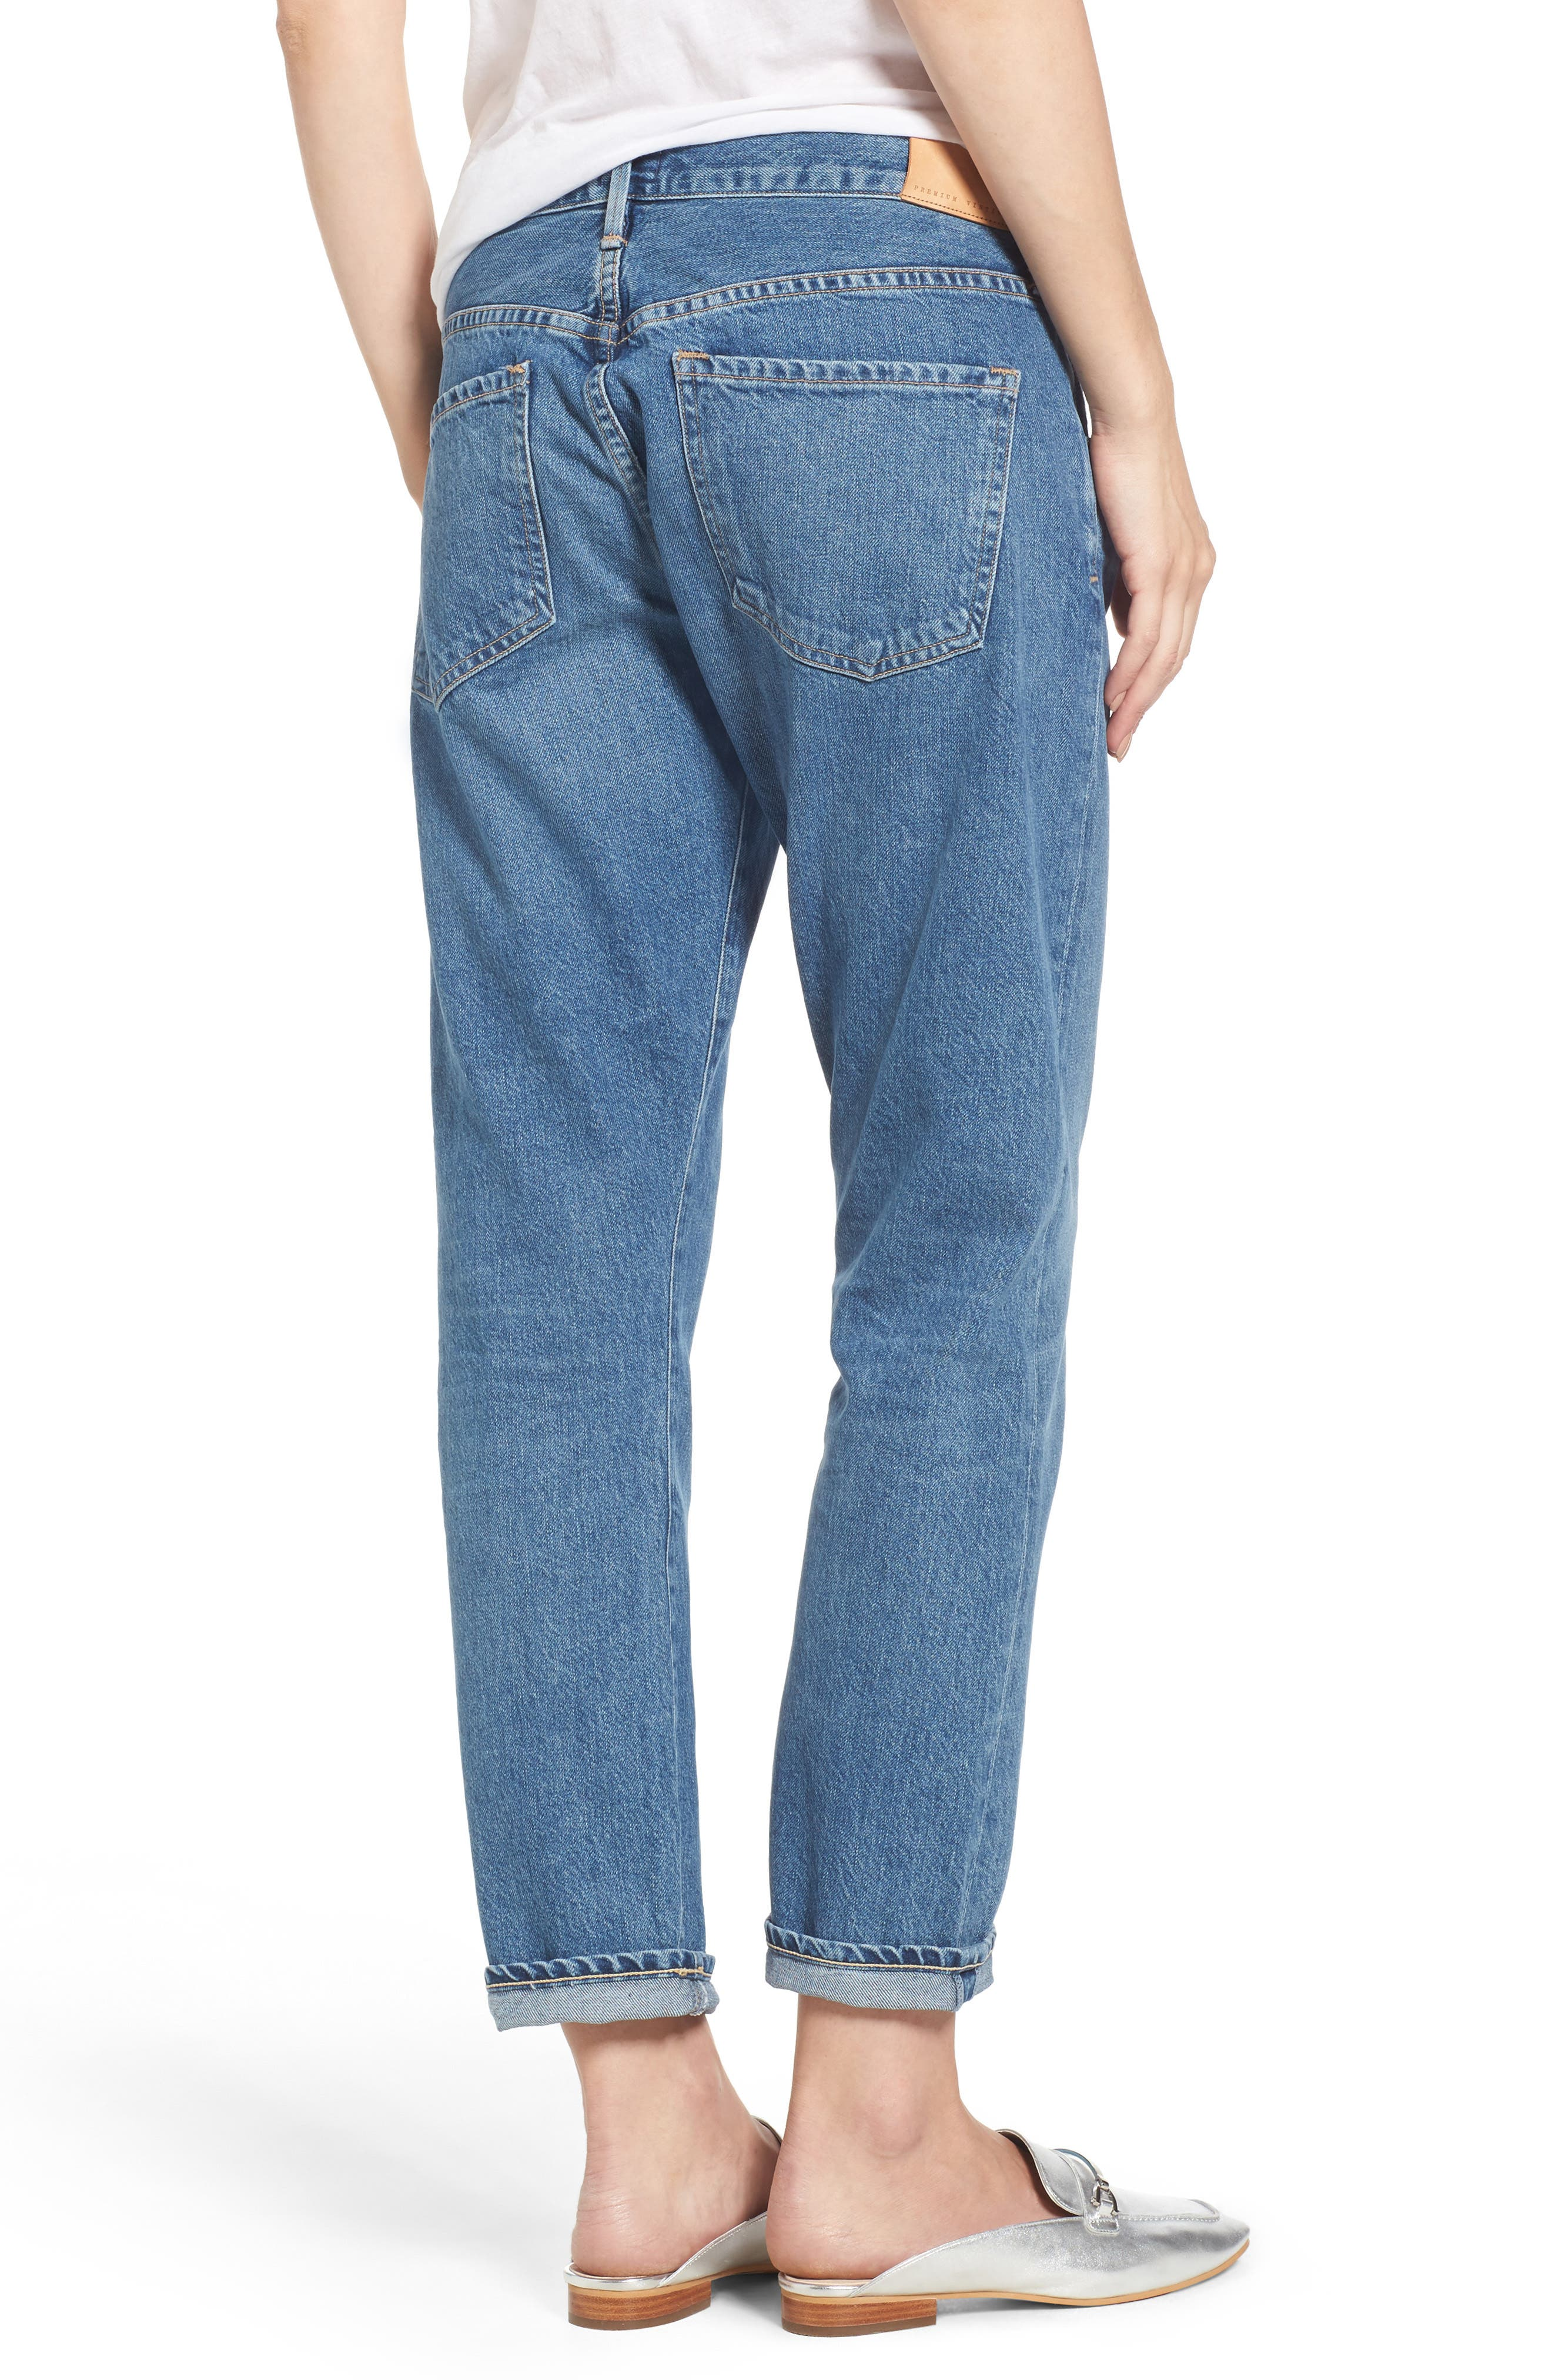 Emerson Slim Boyfriend Jeans,                             Alternate thumbnail 2, color,                             Dream On